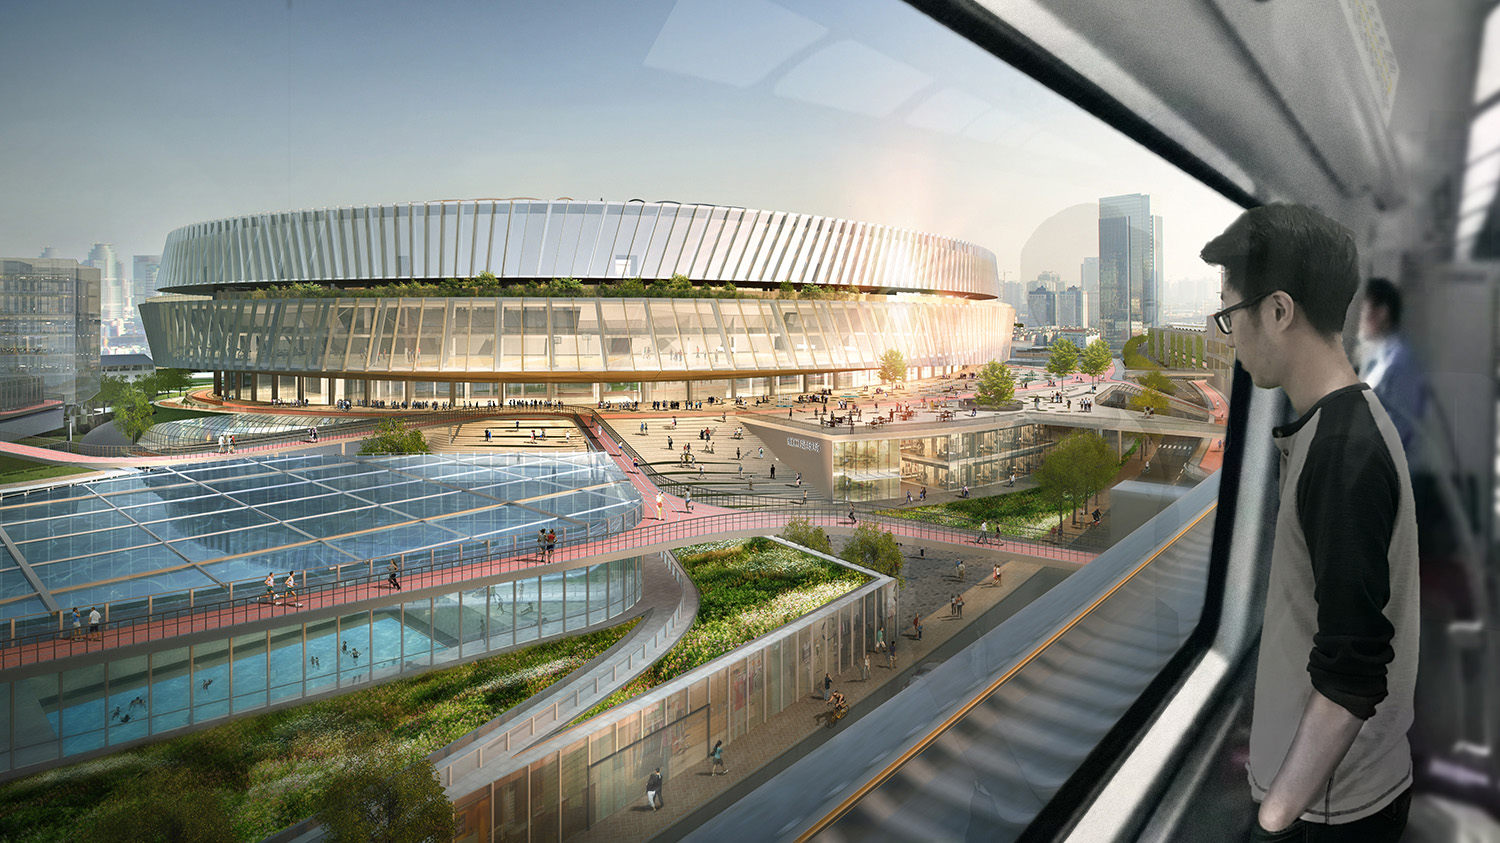 To enhance circulation and maximize efficiency during large events, the redesign of the stadium offers seamless connectivity with the subway and light rail, encouraging fans to use public transit. SASAKI